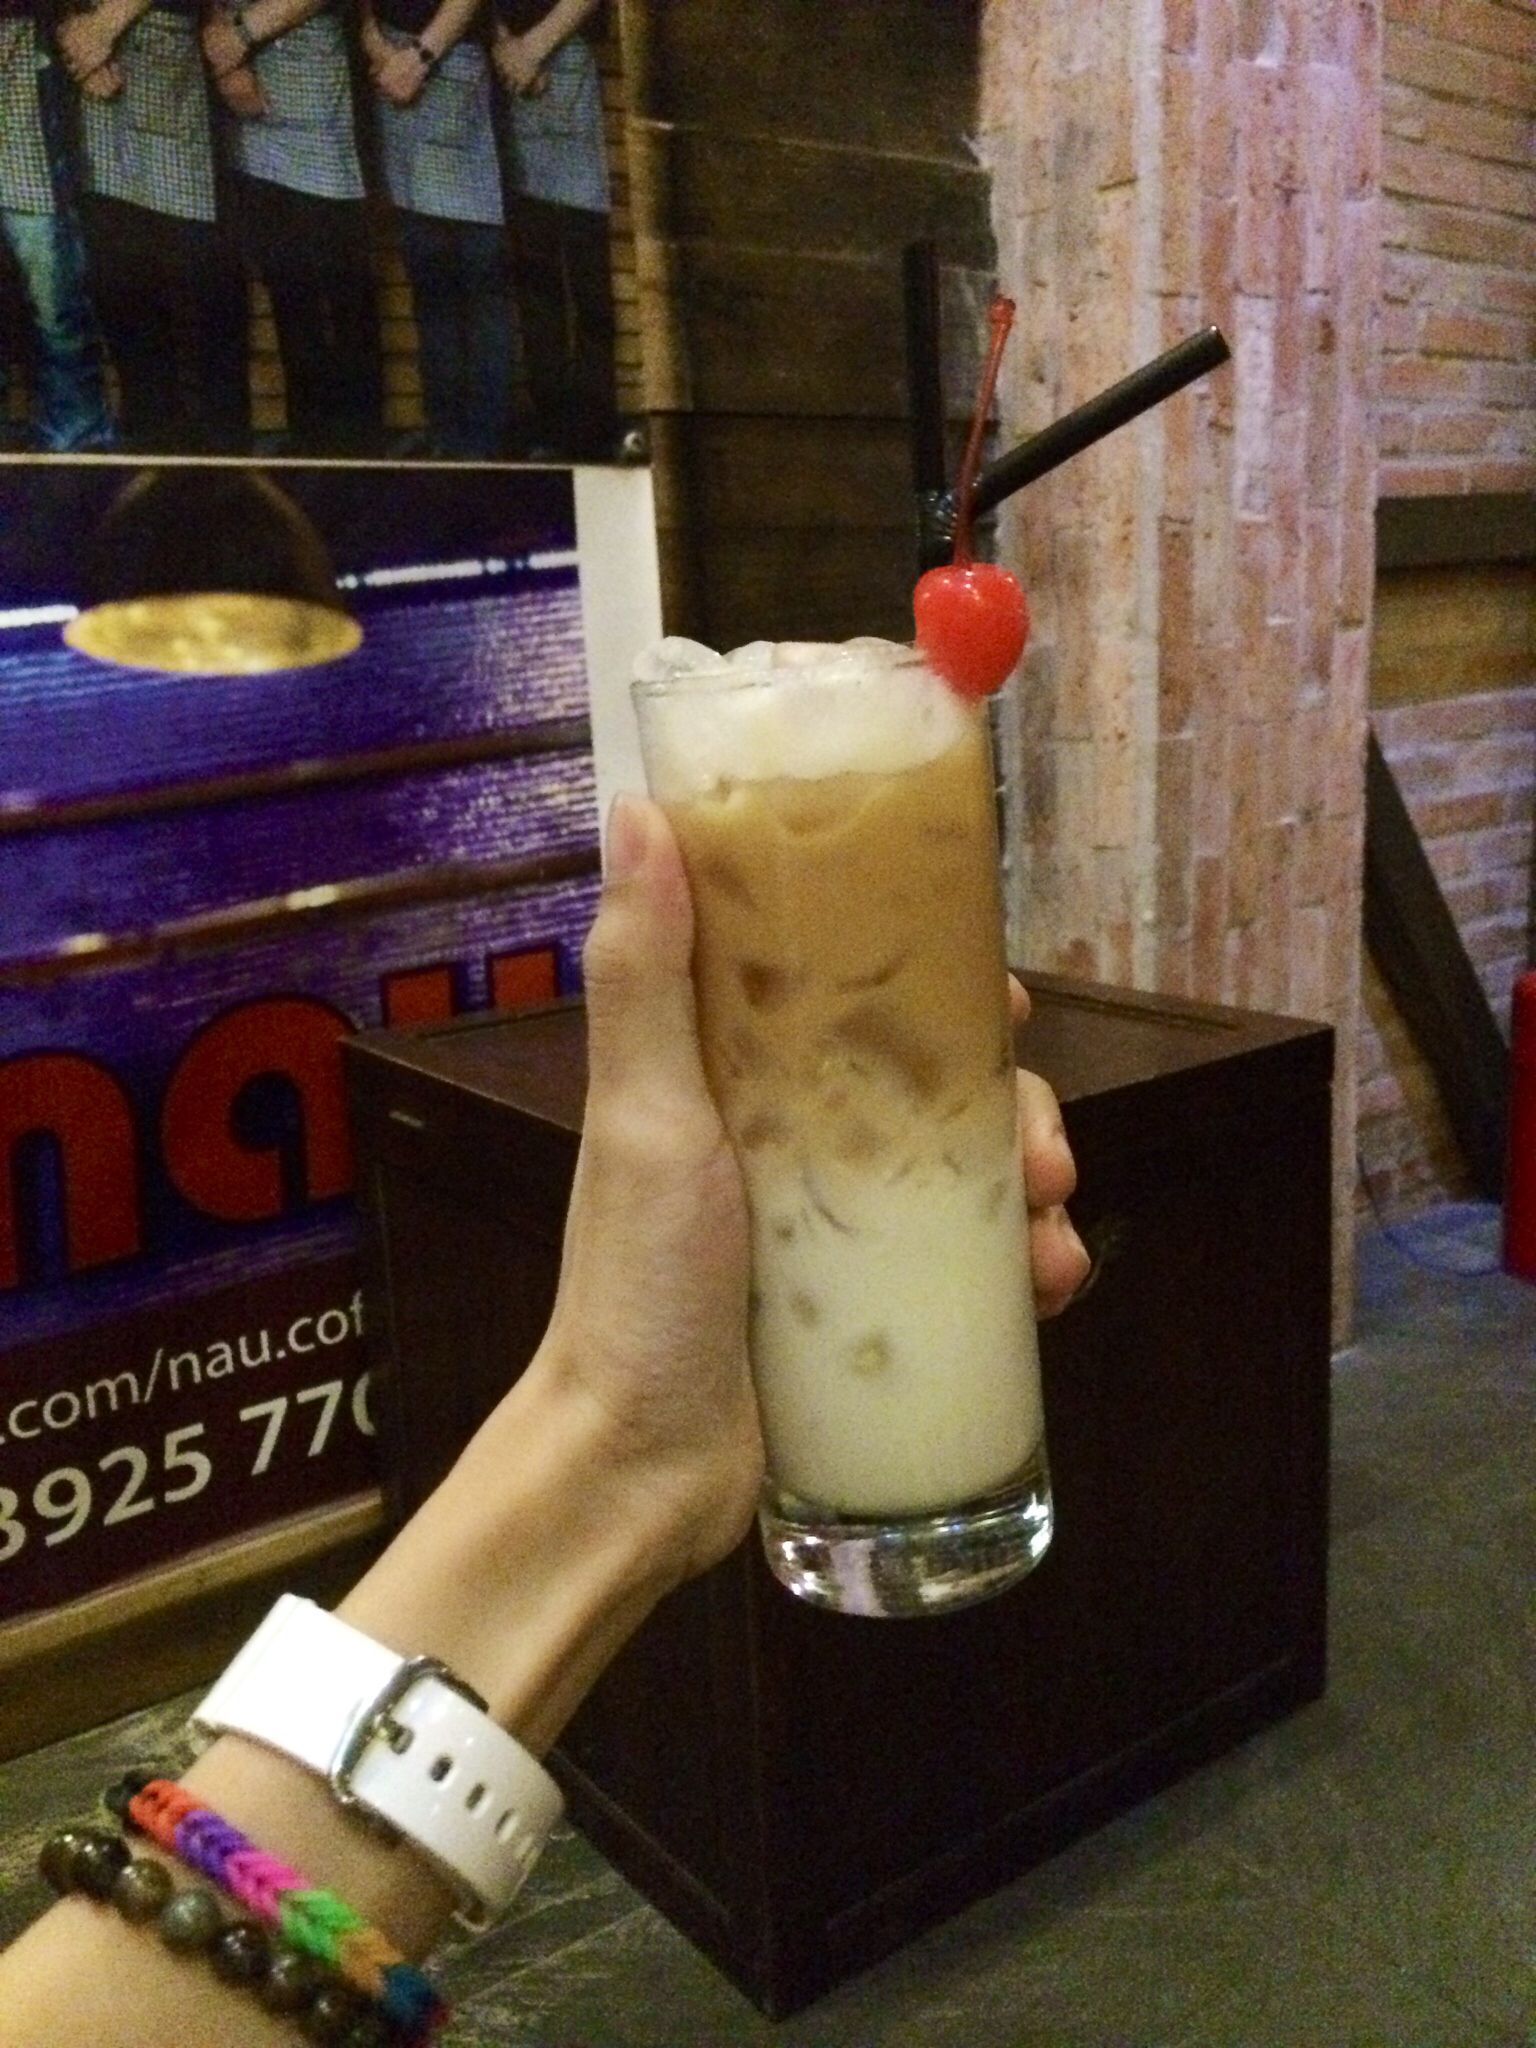 Iced milk tea!